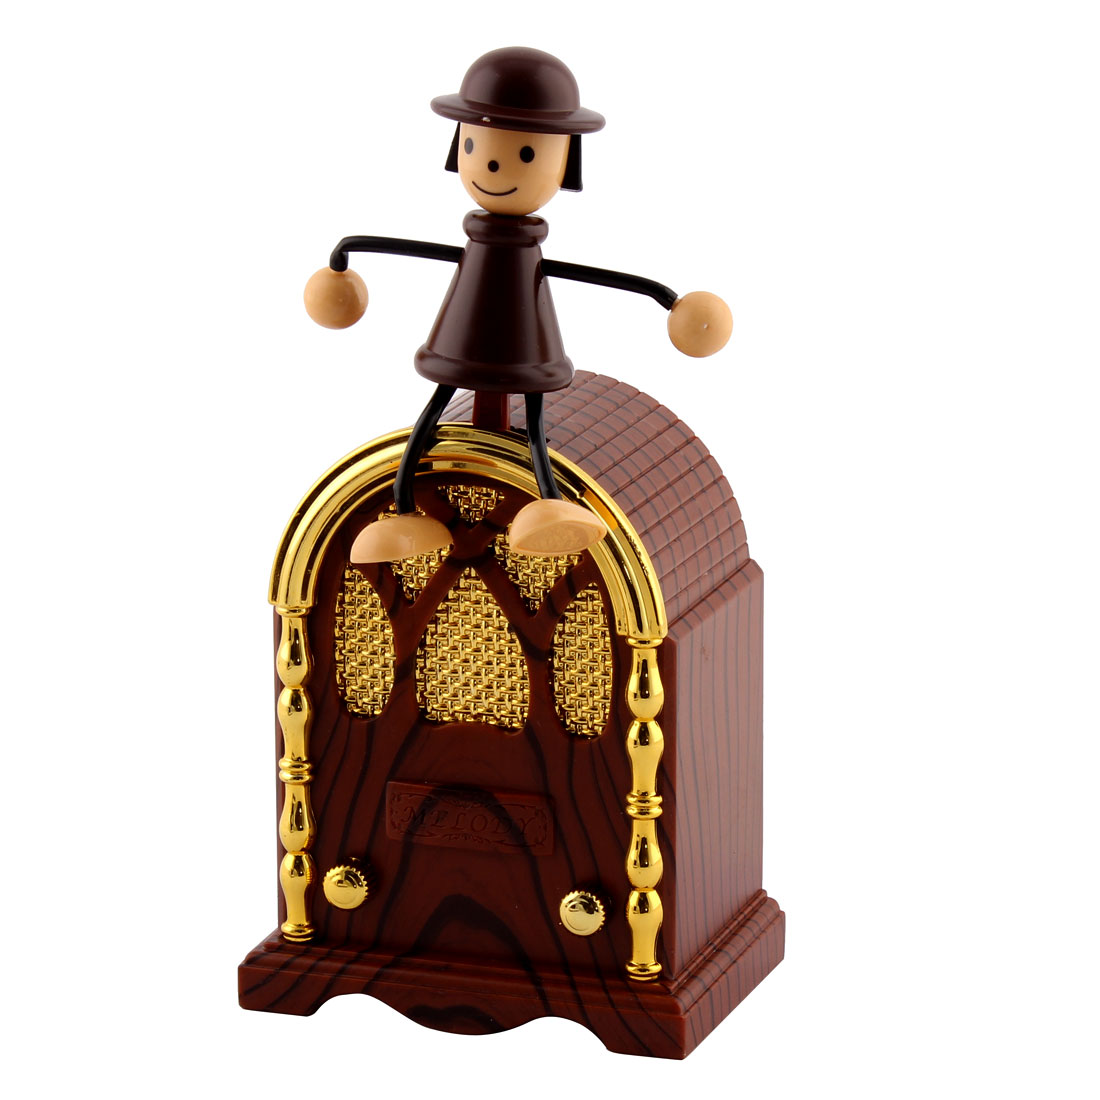 Bedroom Desktop Ornament Vintage Toy Character House Shaped Gramophone Music Box